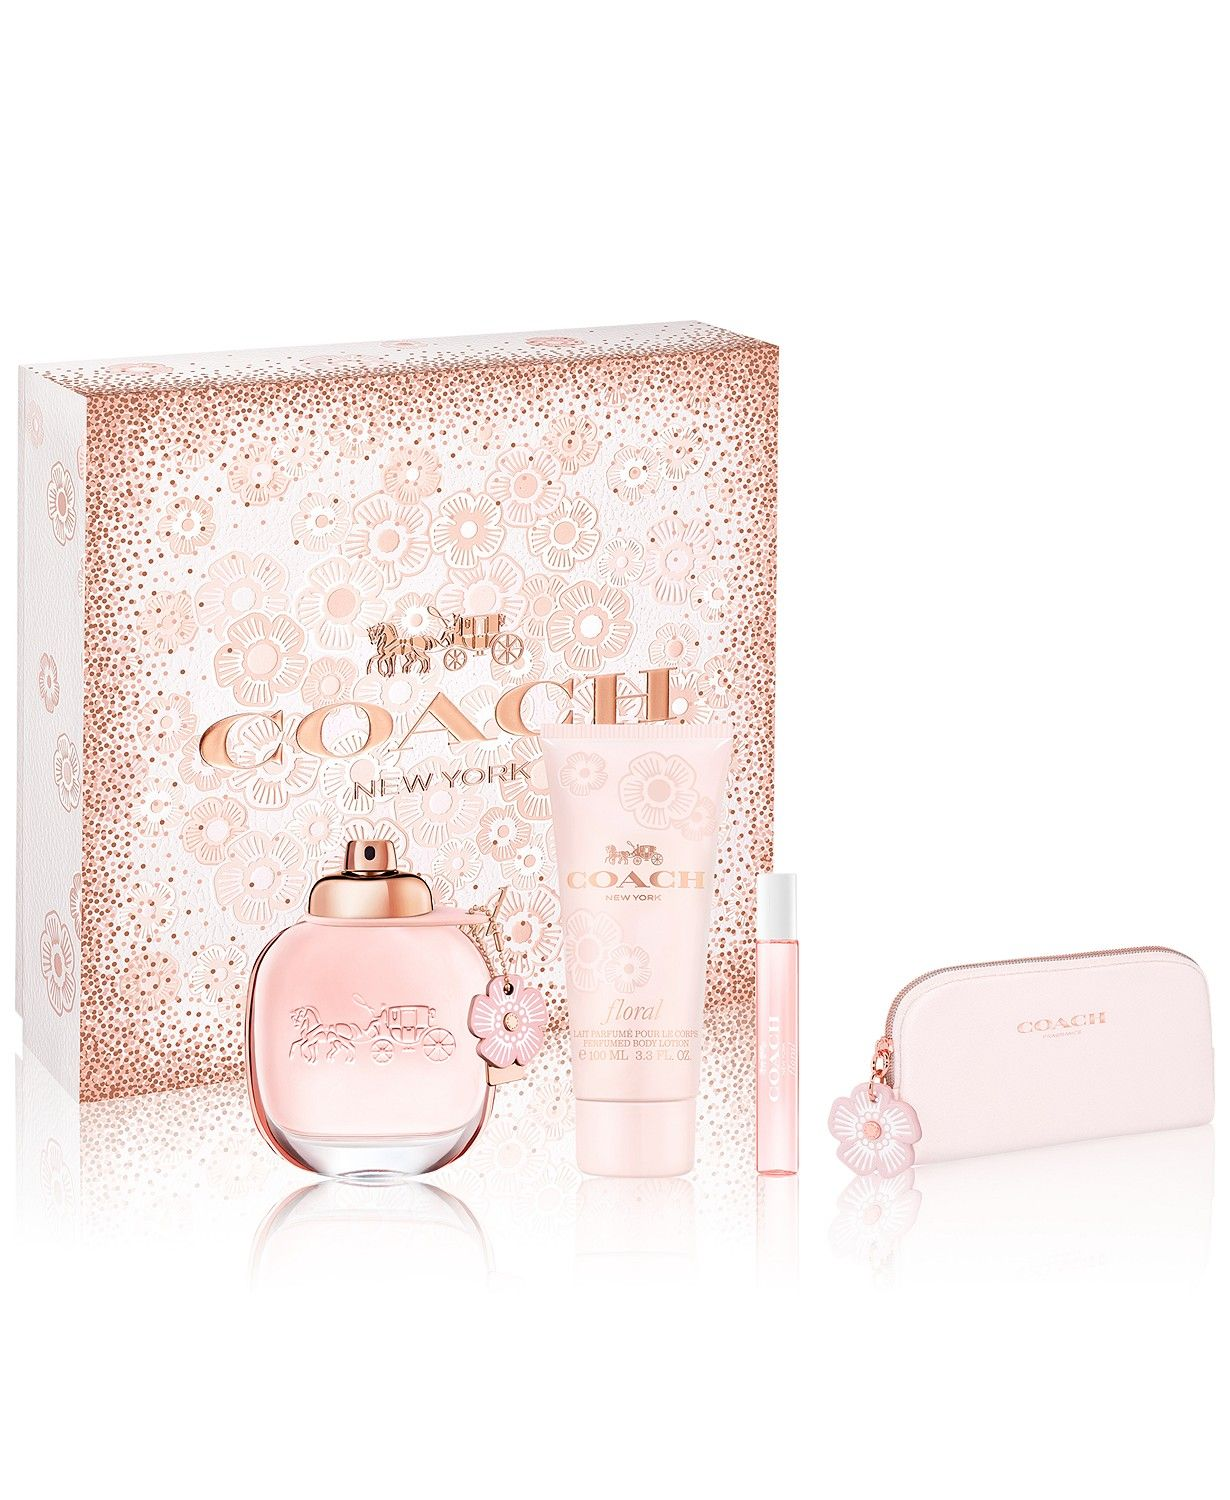 Coach 4 Pc Floral Gift Set Reviews All Perfume Beauty Macy S Coach Floral Feminine Gifts Gift Set